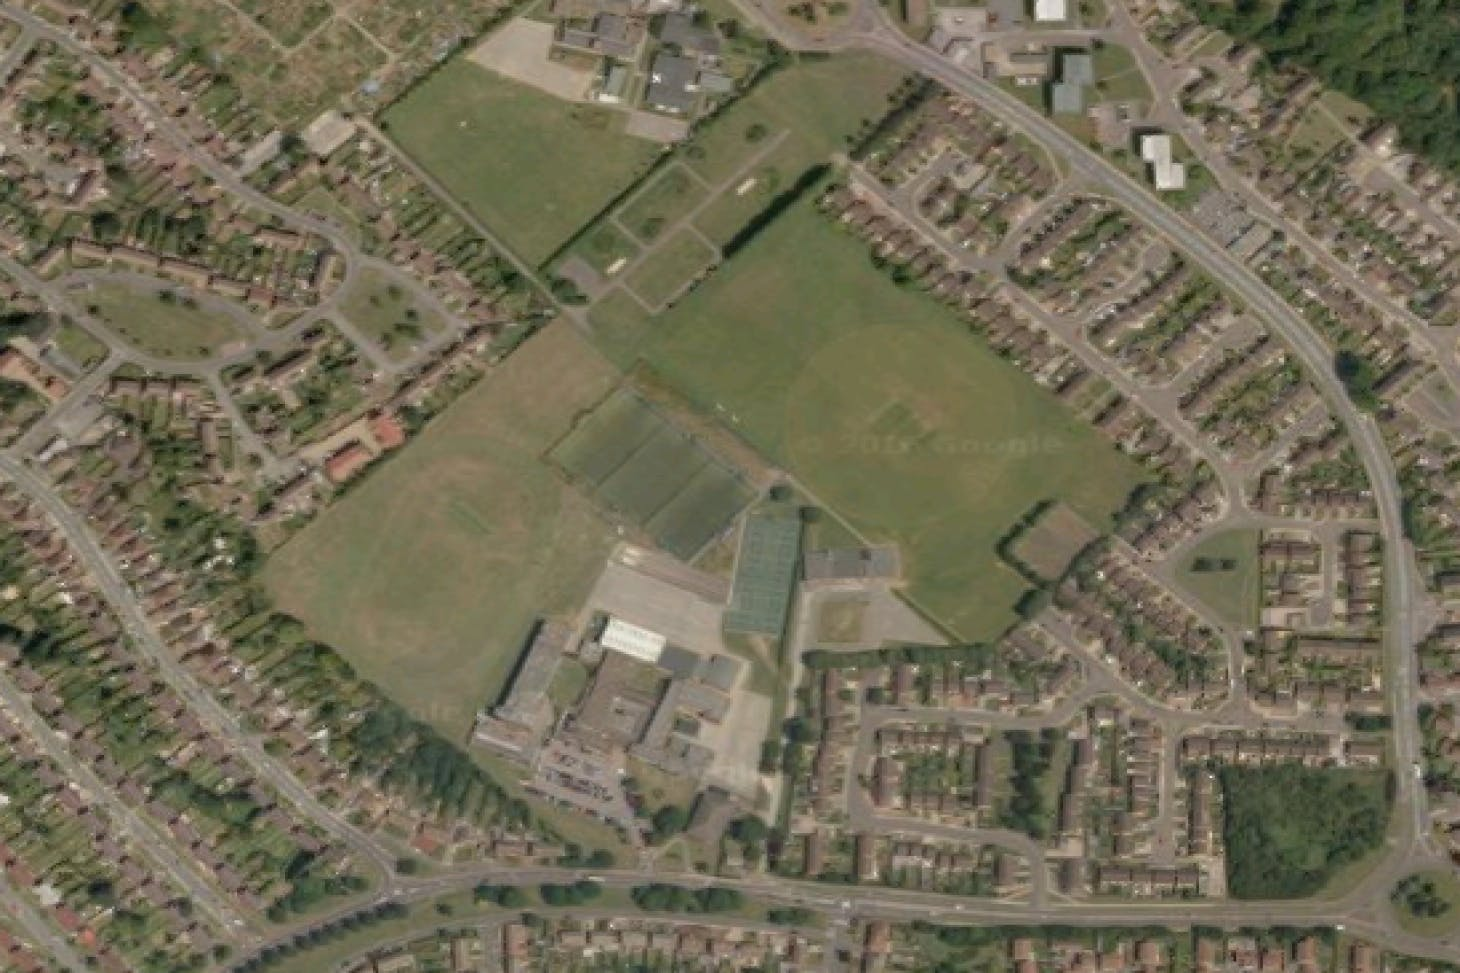 Crawley Green Recreation Ground 11 a side | Grass football pitch